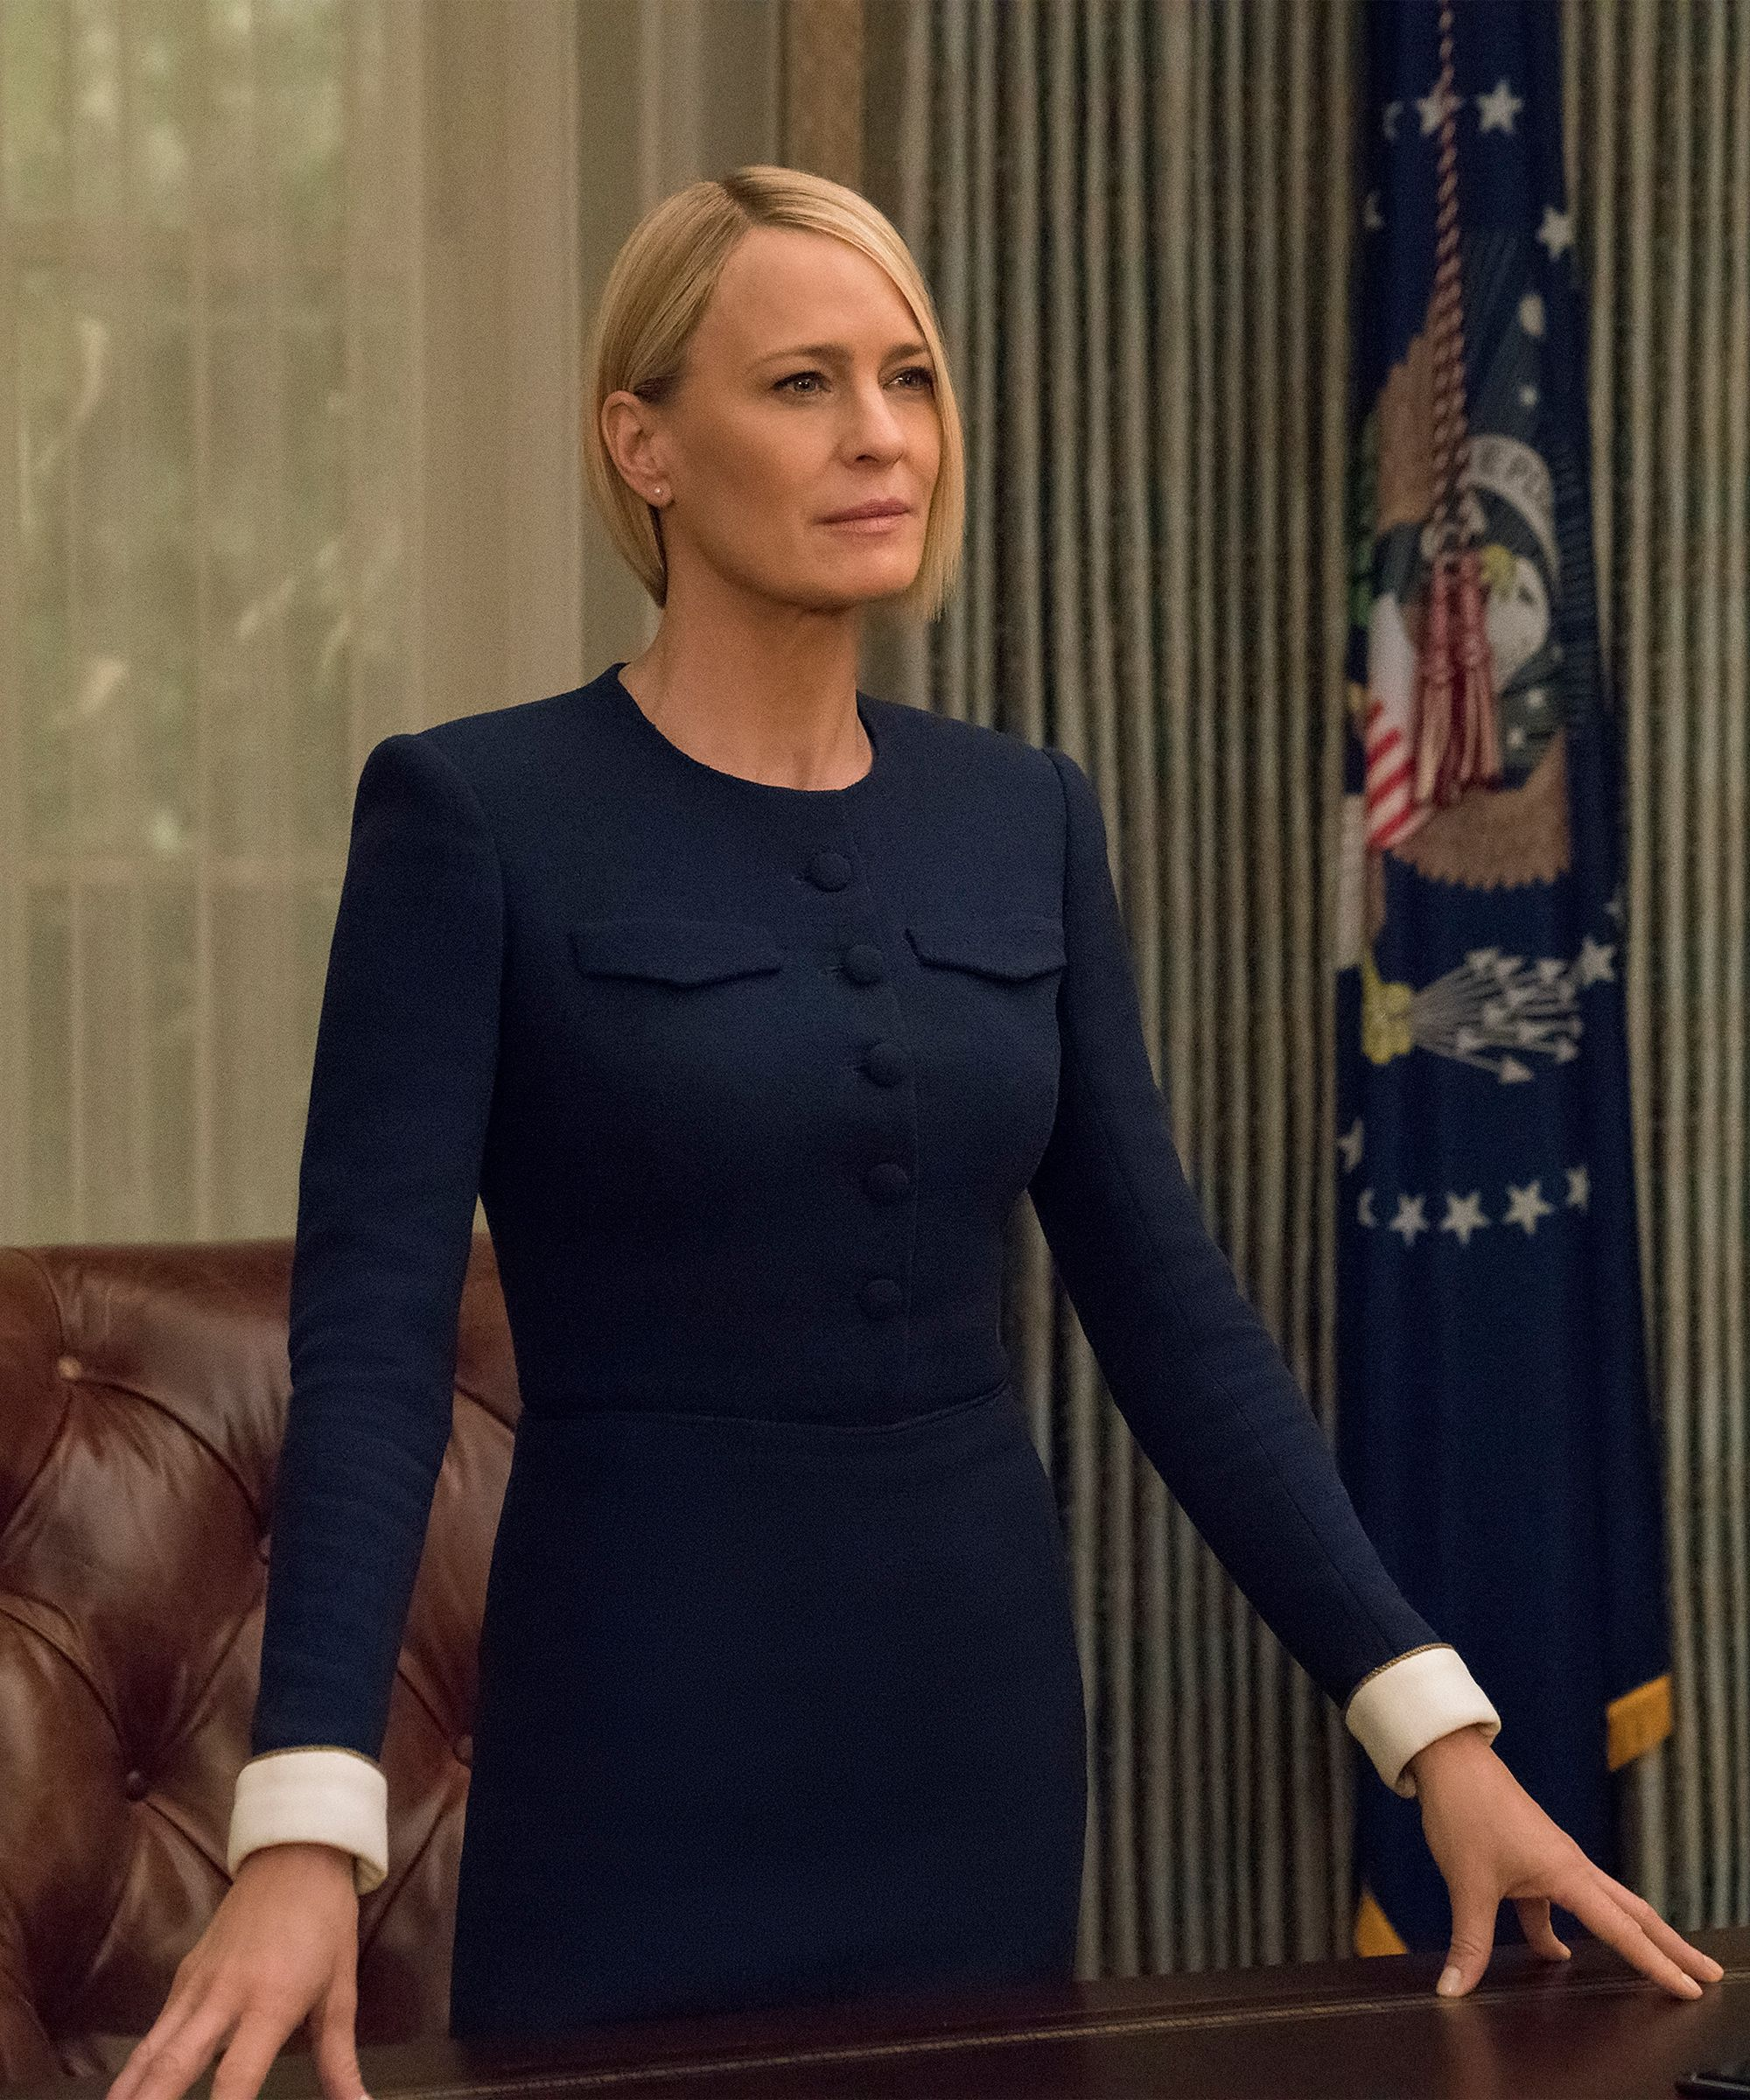 All The Details On Claire Underwood S Amazing Bob From House Of Cards Claire Underwood Style House Of Cards Seasons Claire Underwood